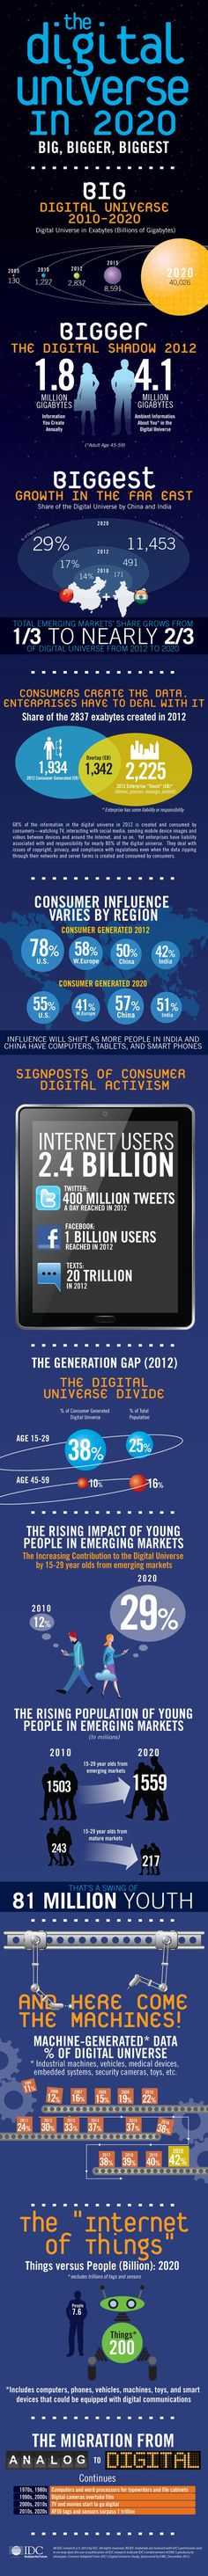 The Digital Universe in 2020 [Infographic]